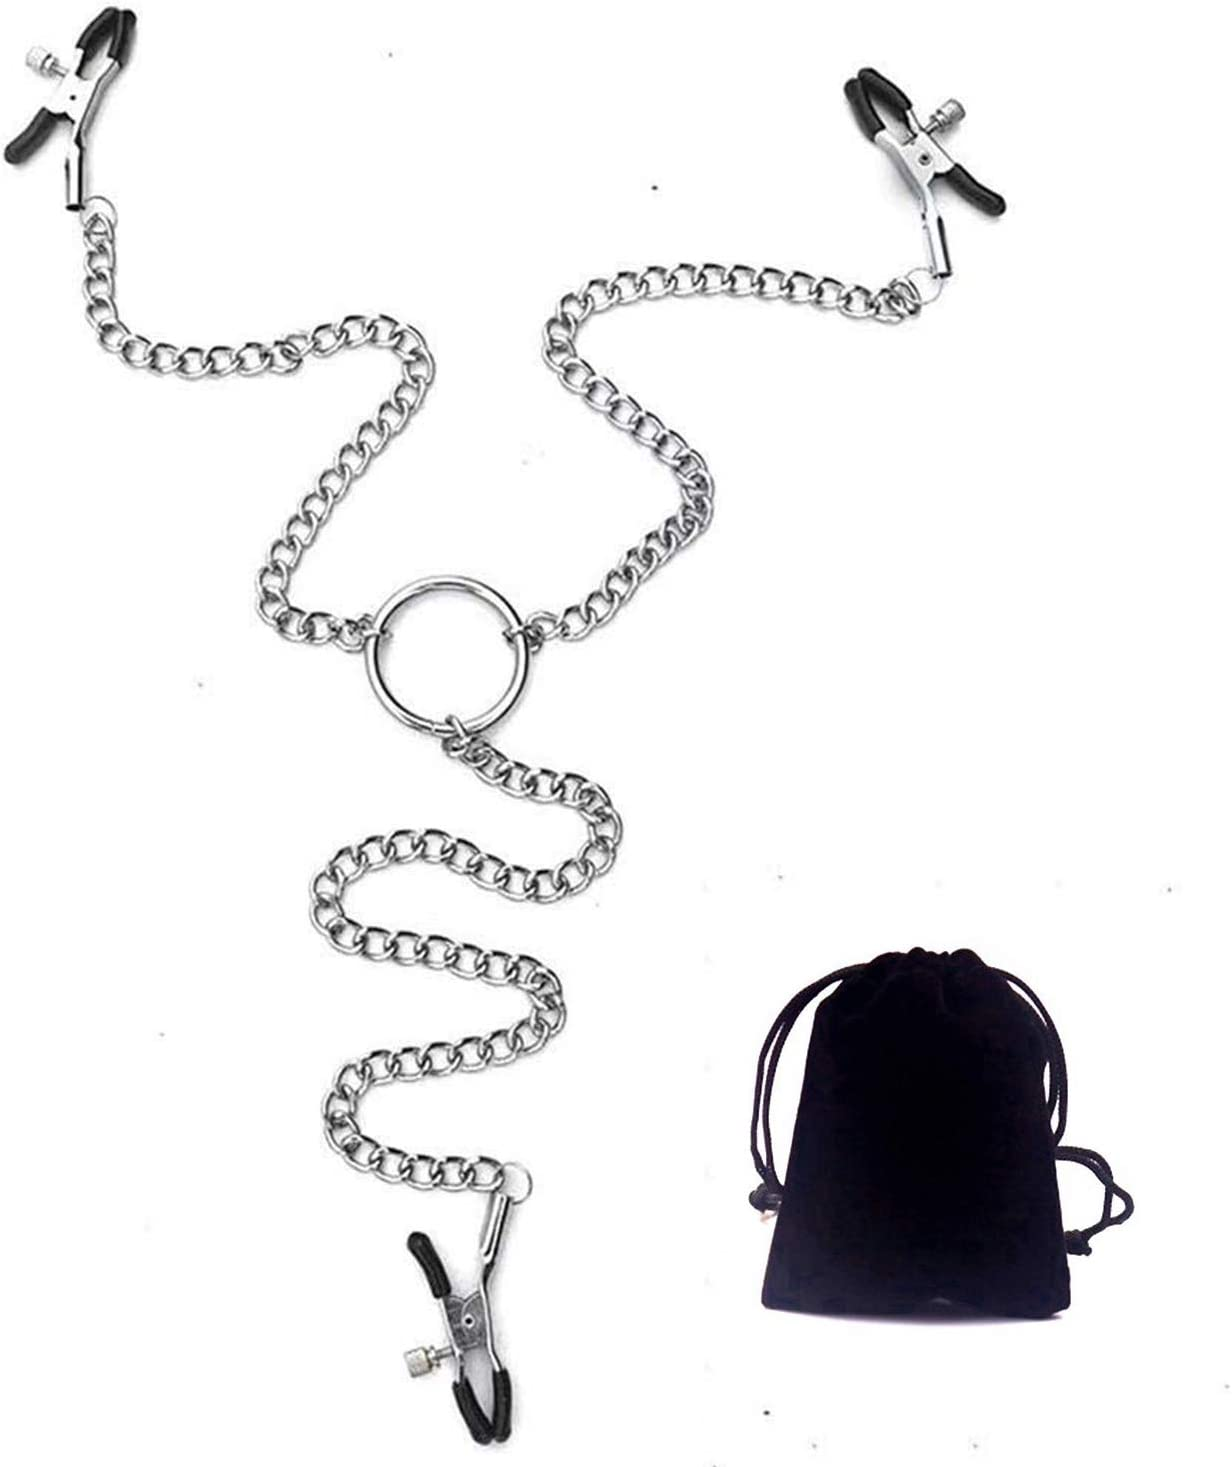 Adjustable Chain Clamps with Storage Bag